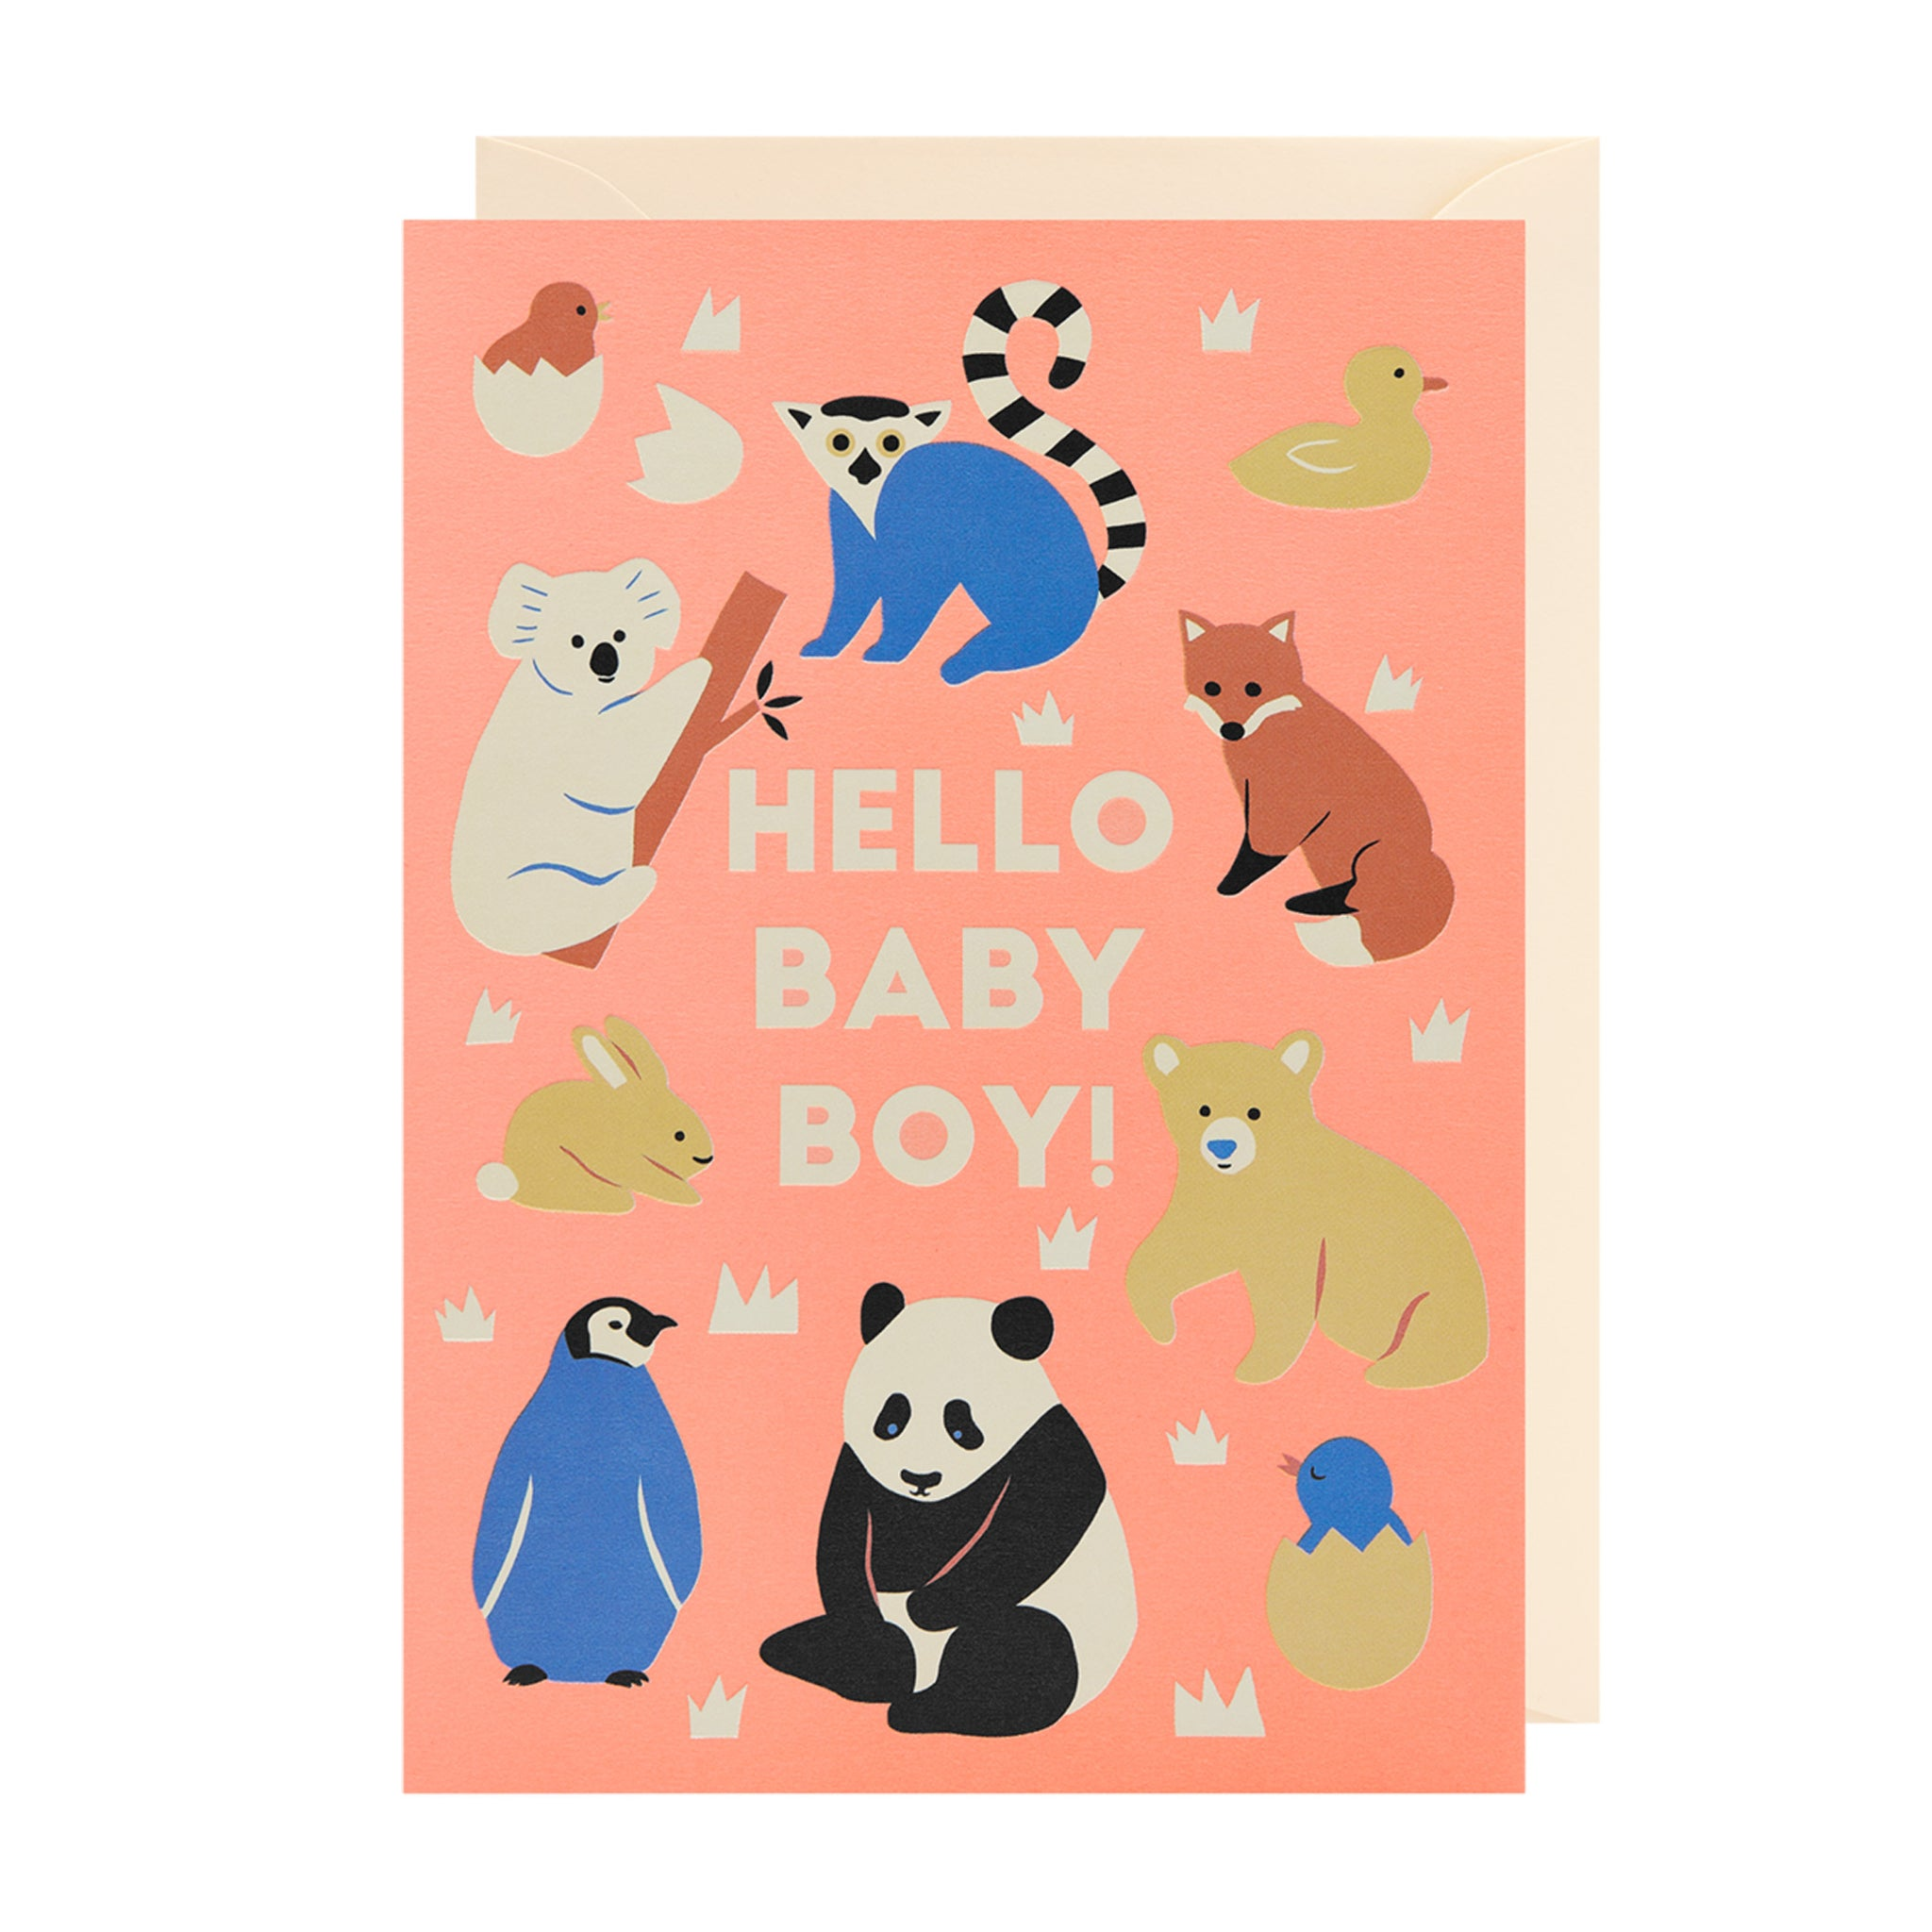 Hello Baby Boy! - Card